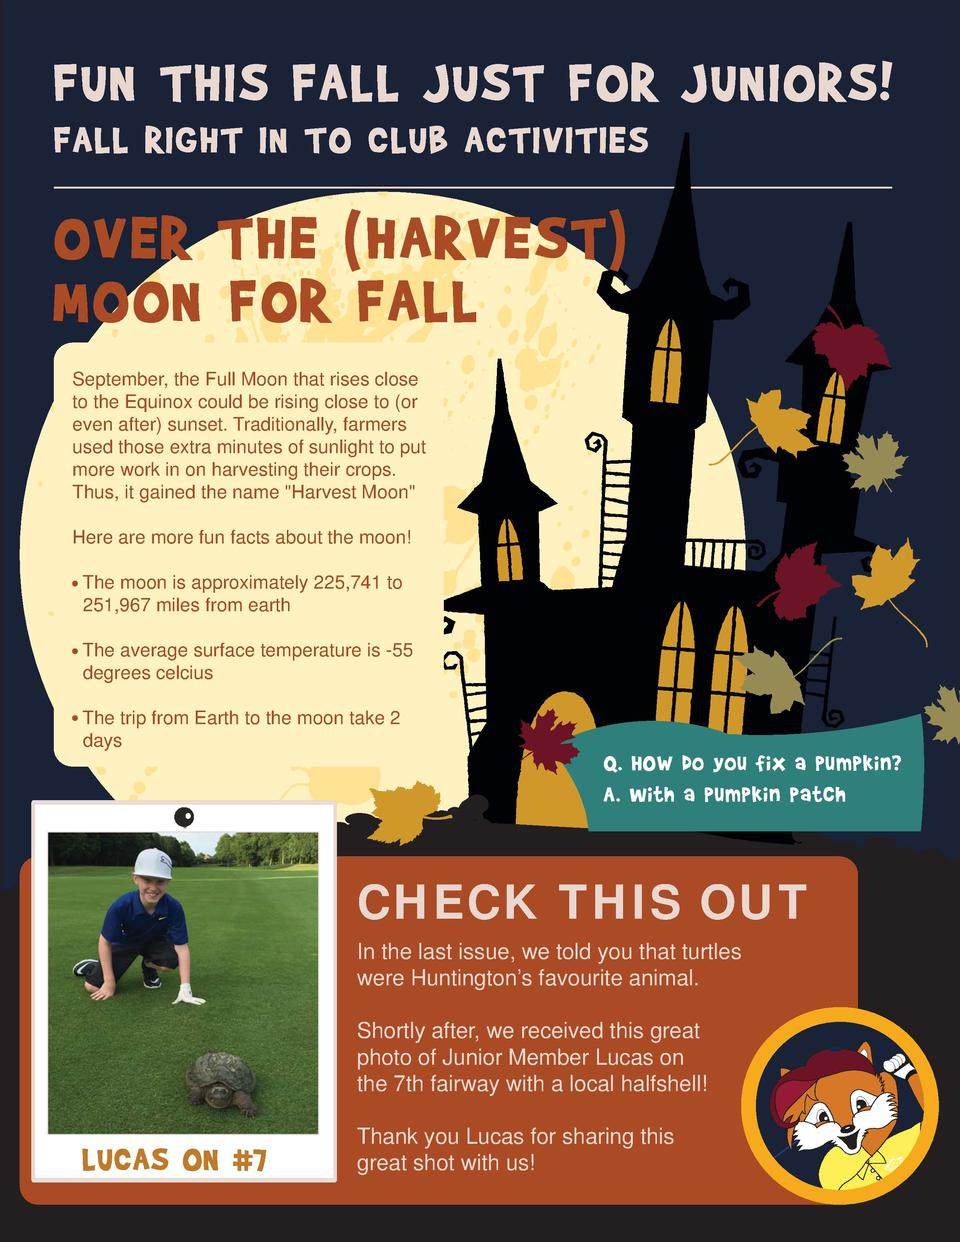 FUN THIS FALL JUST FOR JUNIORS  FALL RIGHT IN TO CLUB ACTIVITIES  OVER THE  HARVEST  MOON FOR FALL September, the Full Moo...